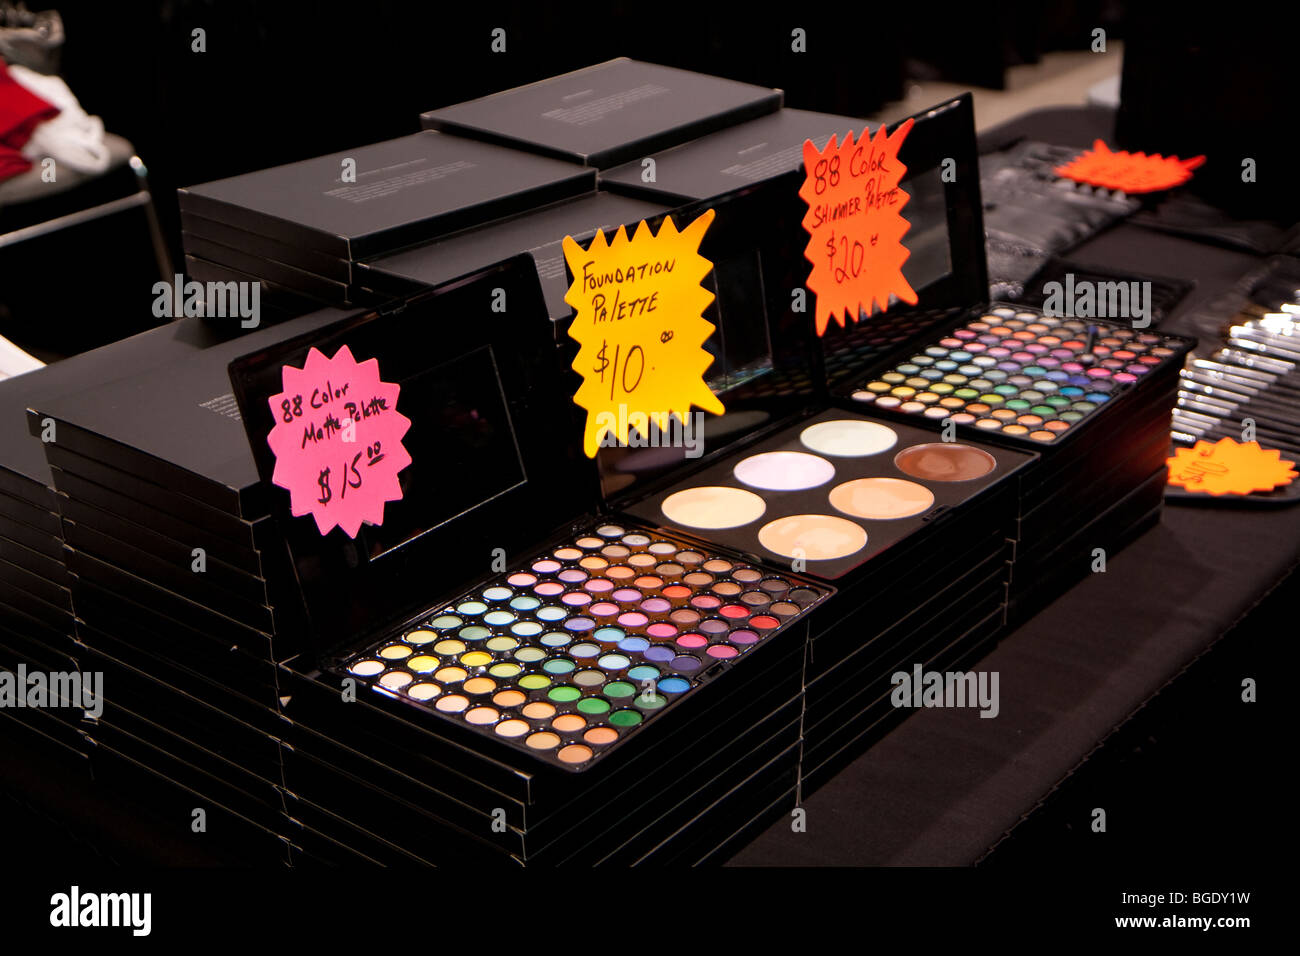 eyeshadow palette on sale women cosmetic makeup - Stock Image